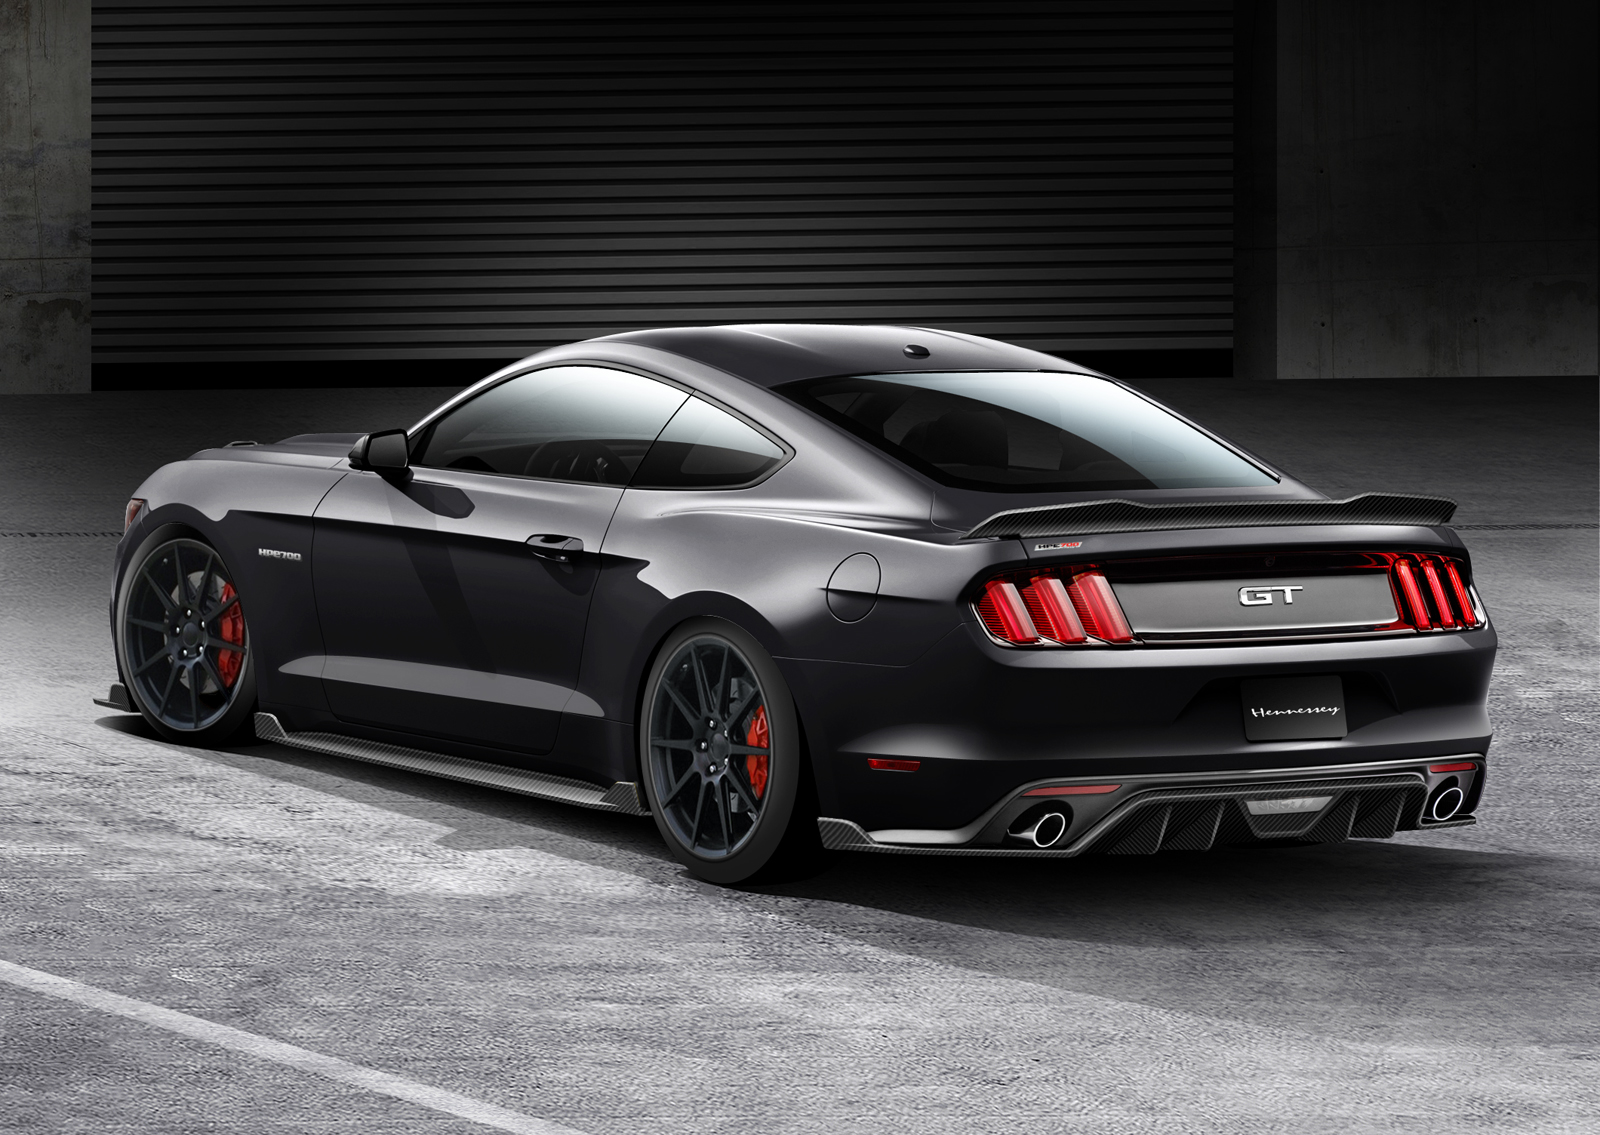 hennessey 39 s new 2015 mustang gt supercharged hpe600 and hpe700 kits from 15k carscoops. Black Bedroom Furniture Sets. Home Design Ideas